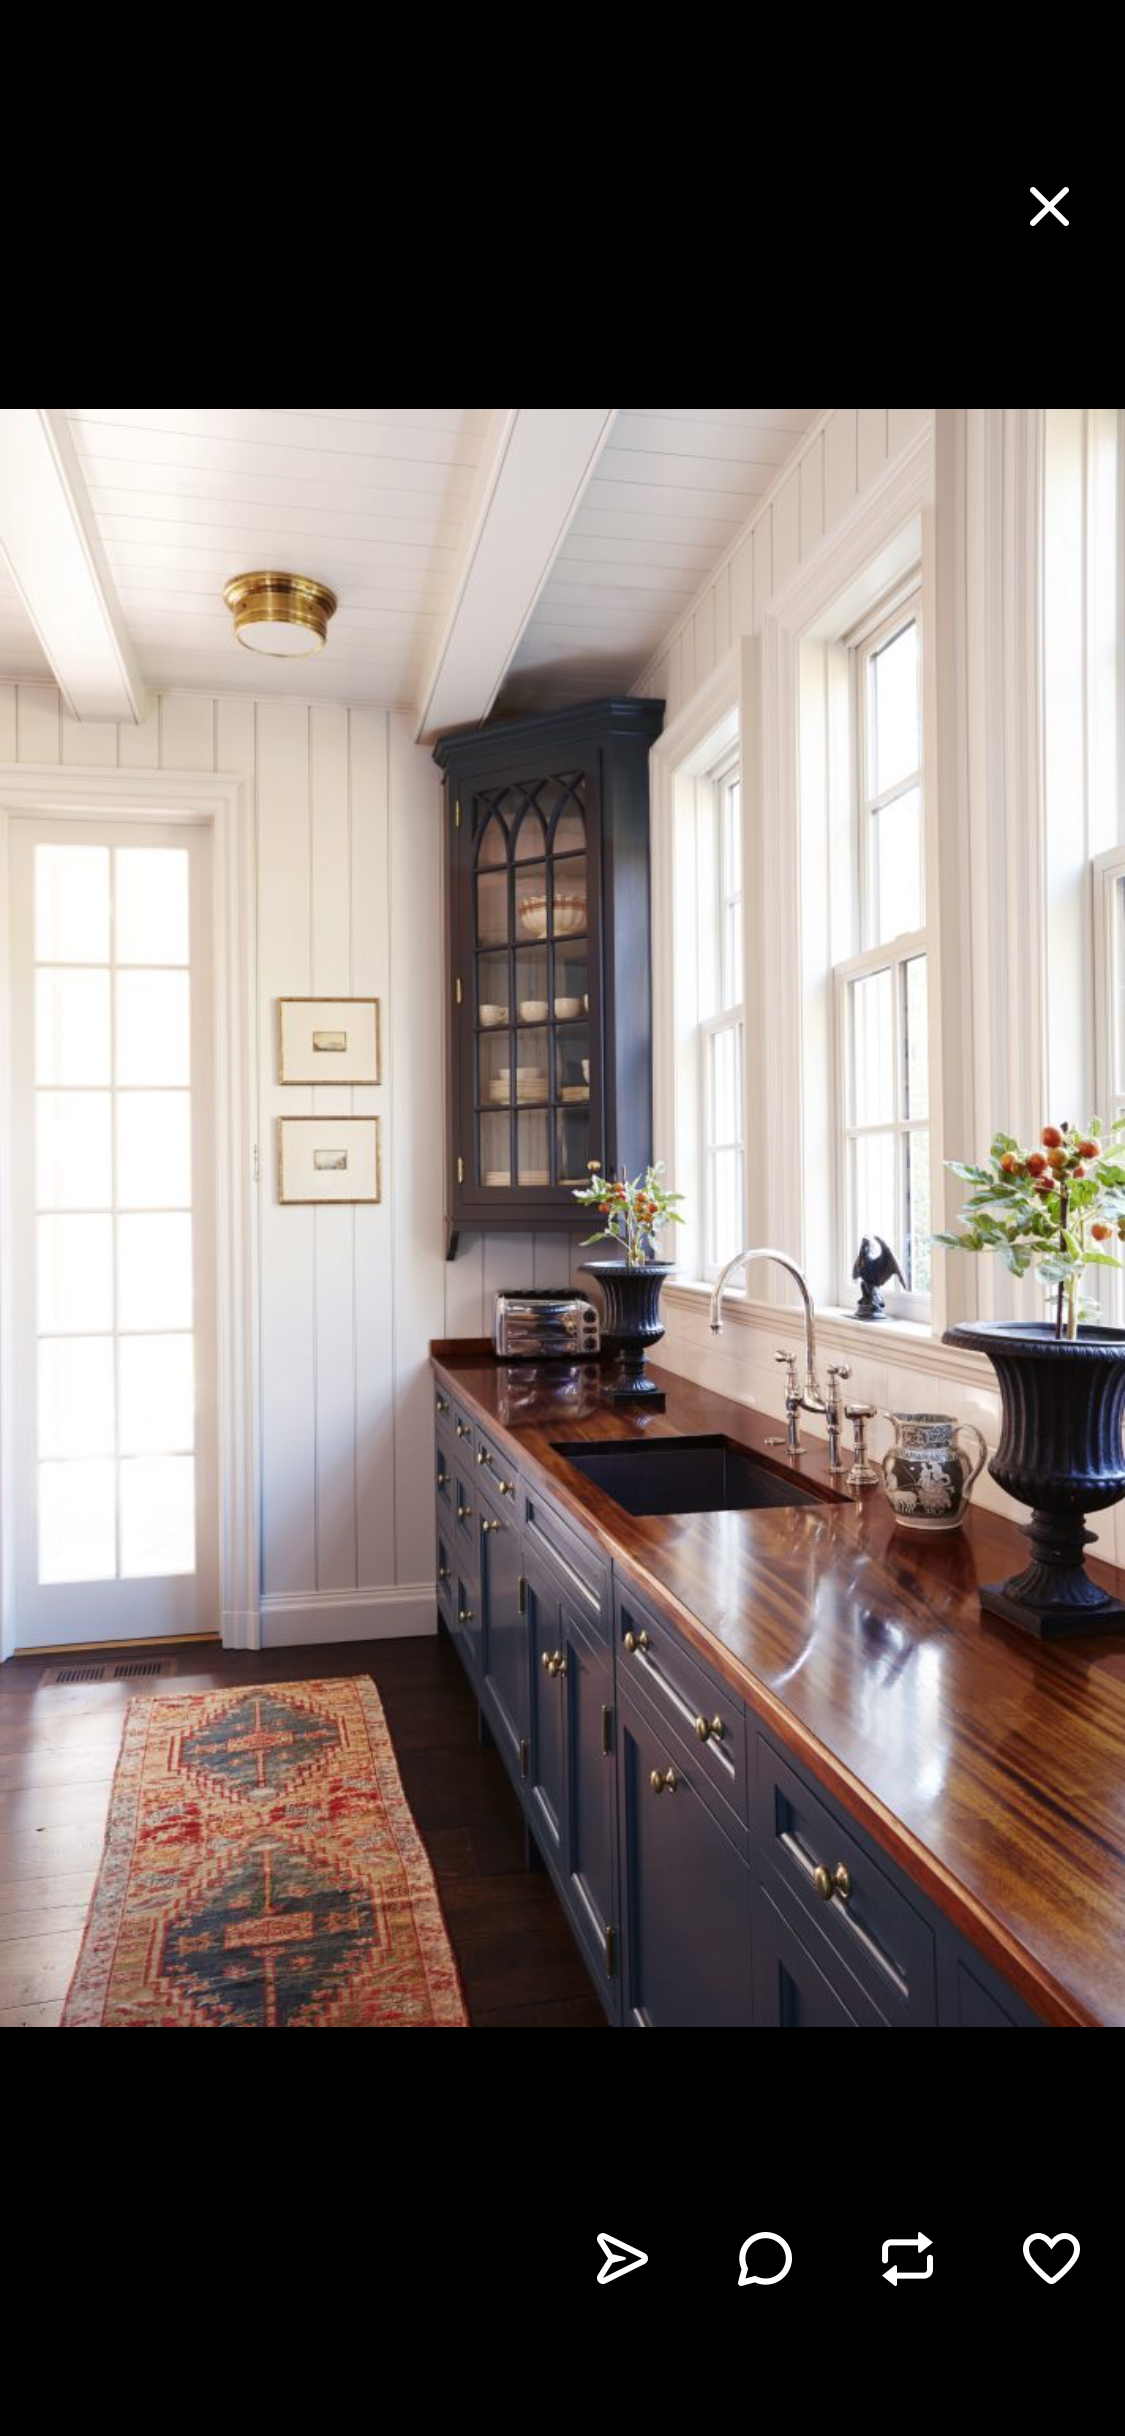 I Love The Corner Cabinet Dark Cabinets With Wood Counter Tops And White Walls Kitchen Remodel Kitchen Inspirations Kitchen Design